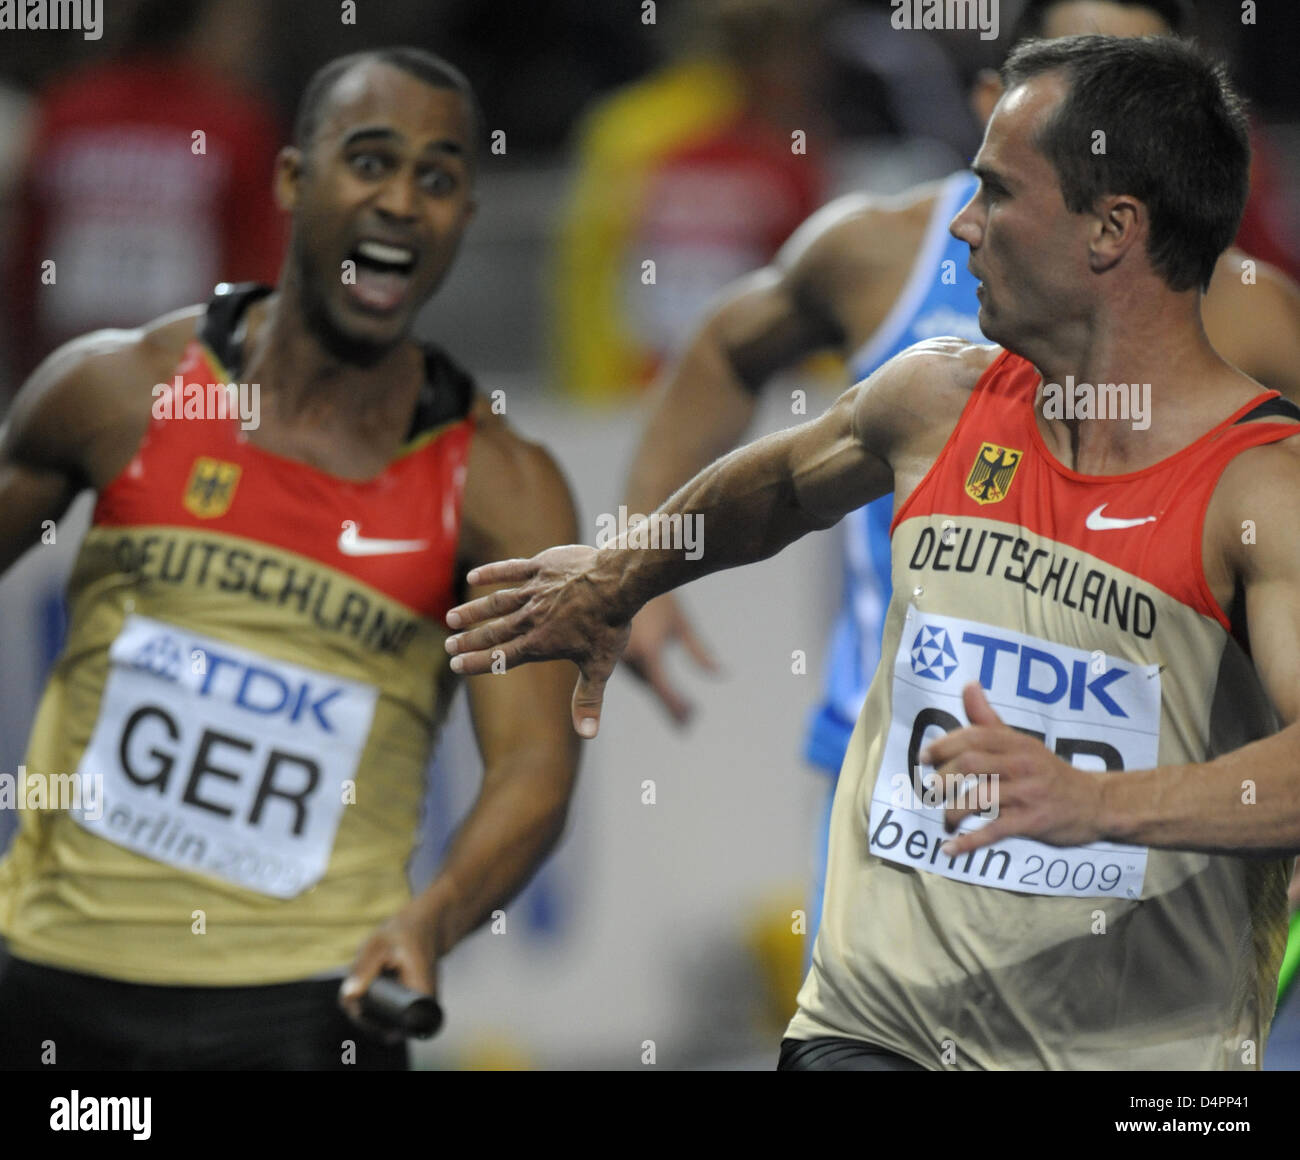 Germans Marius Broening (L) and Alexander Kosenkow fail at the handover during a men?s 4x100m relay heat at the - Stock Image